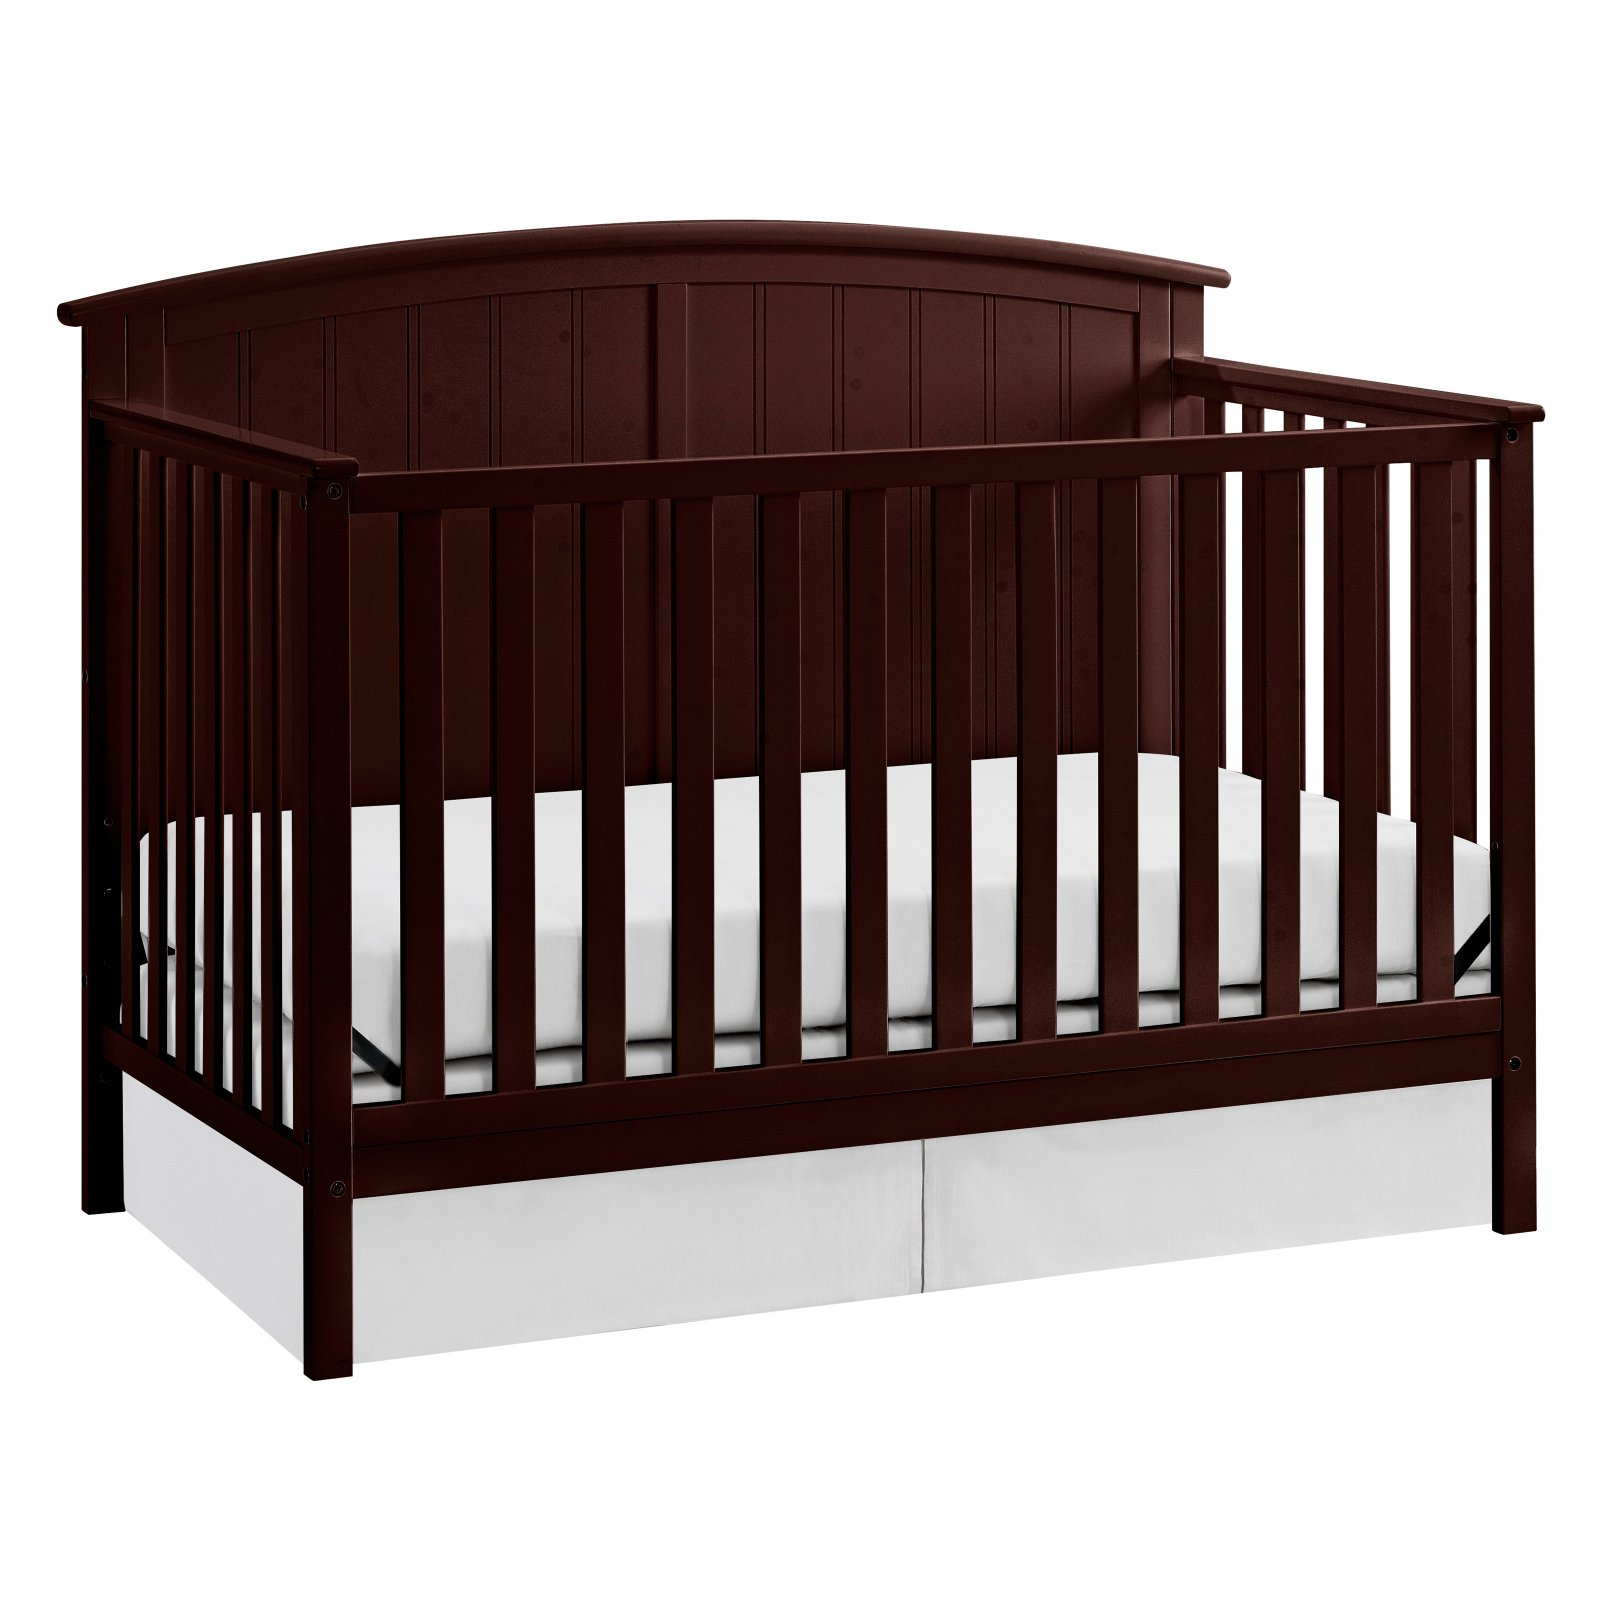 Storkcraft Steveston 4 in 1 Convertible Crib Espresso